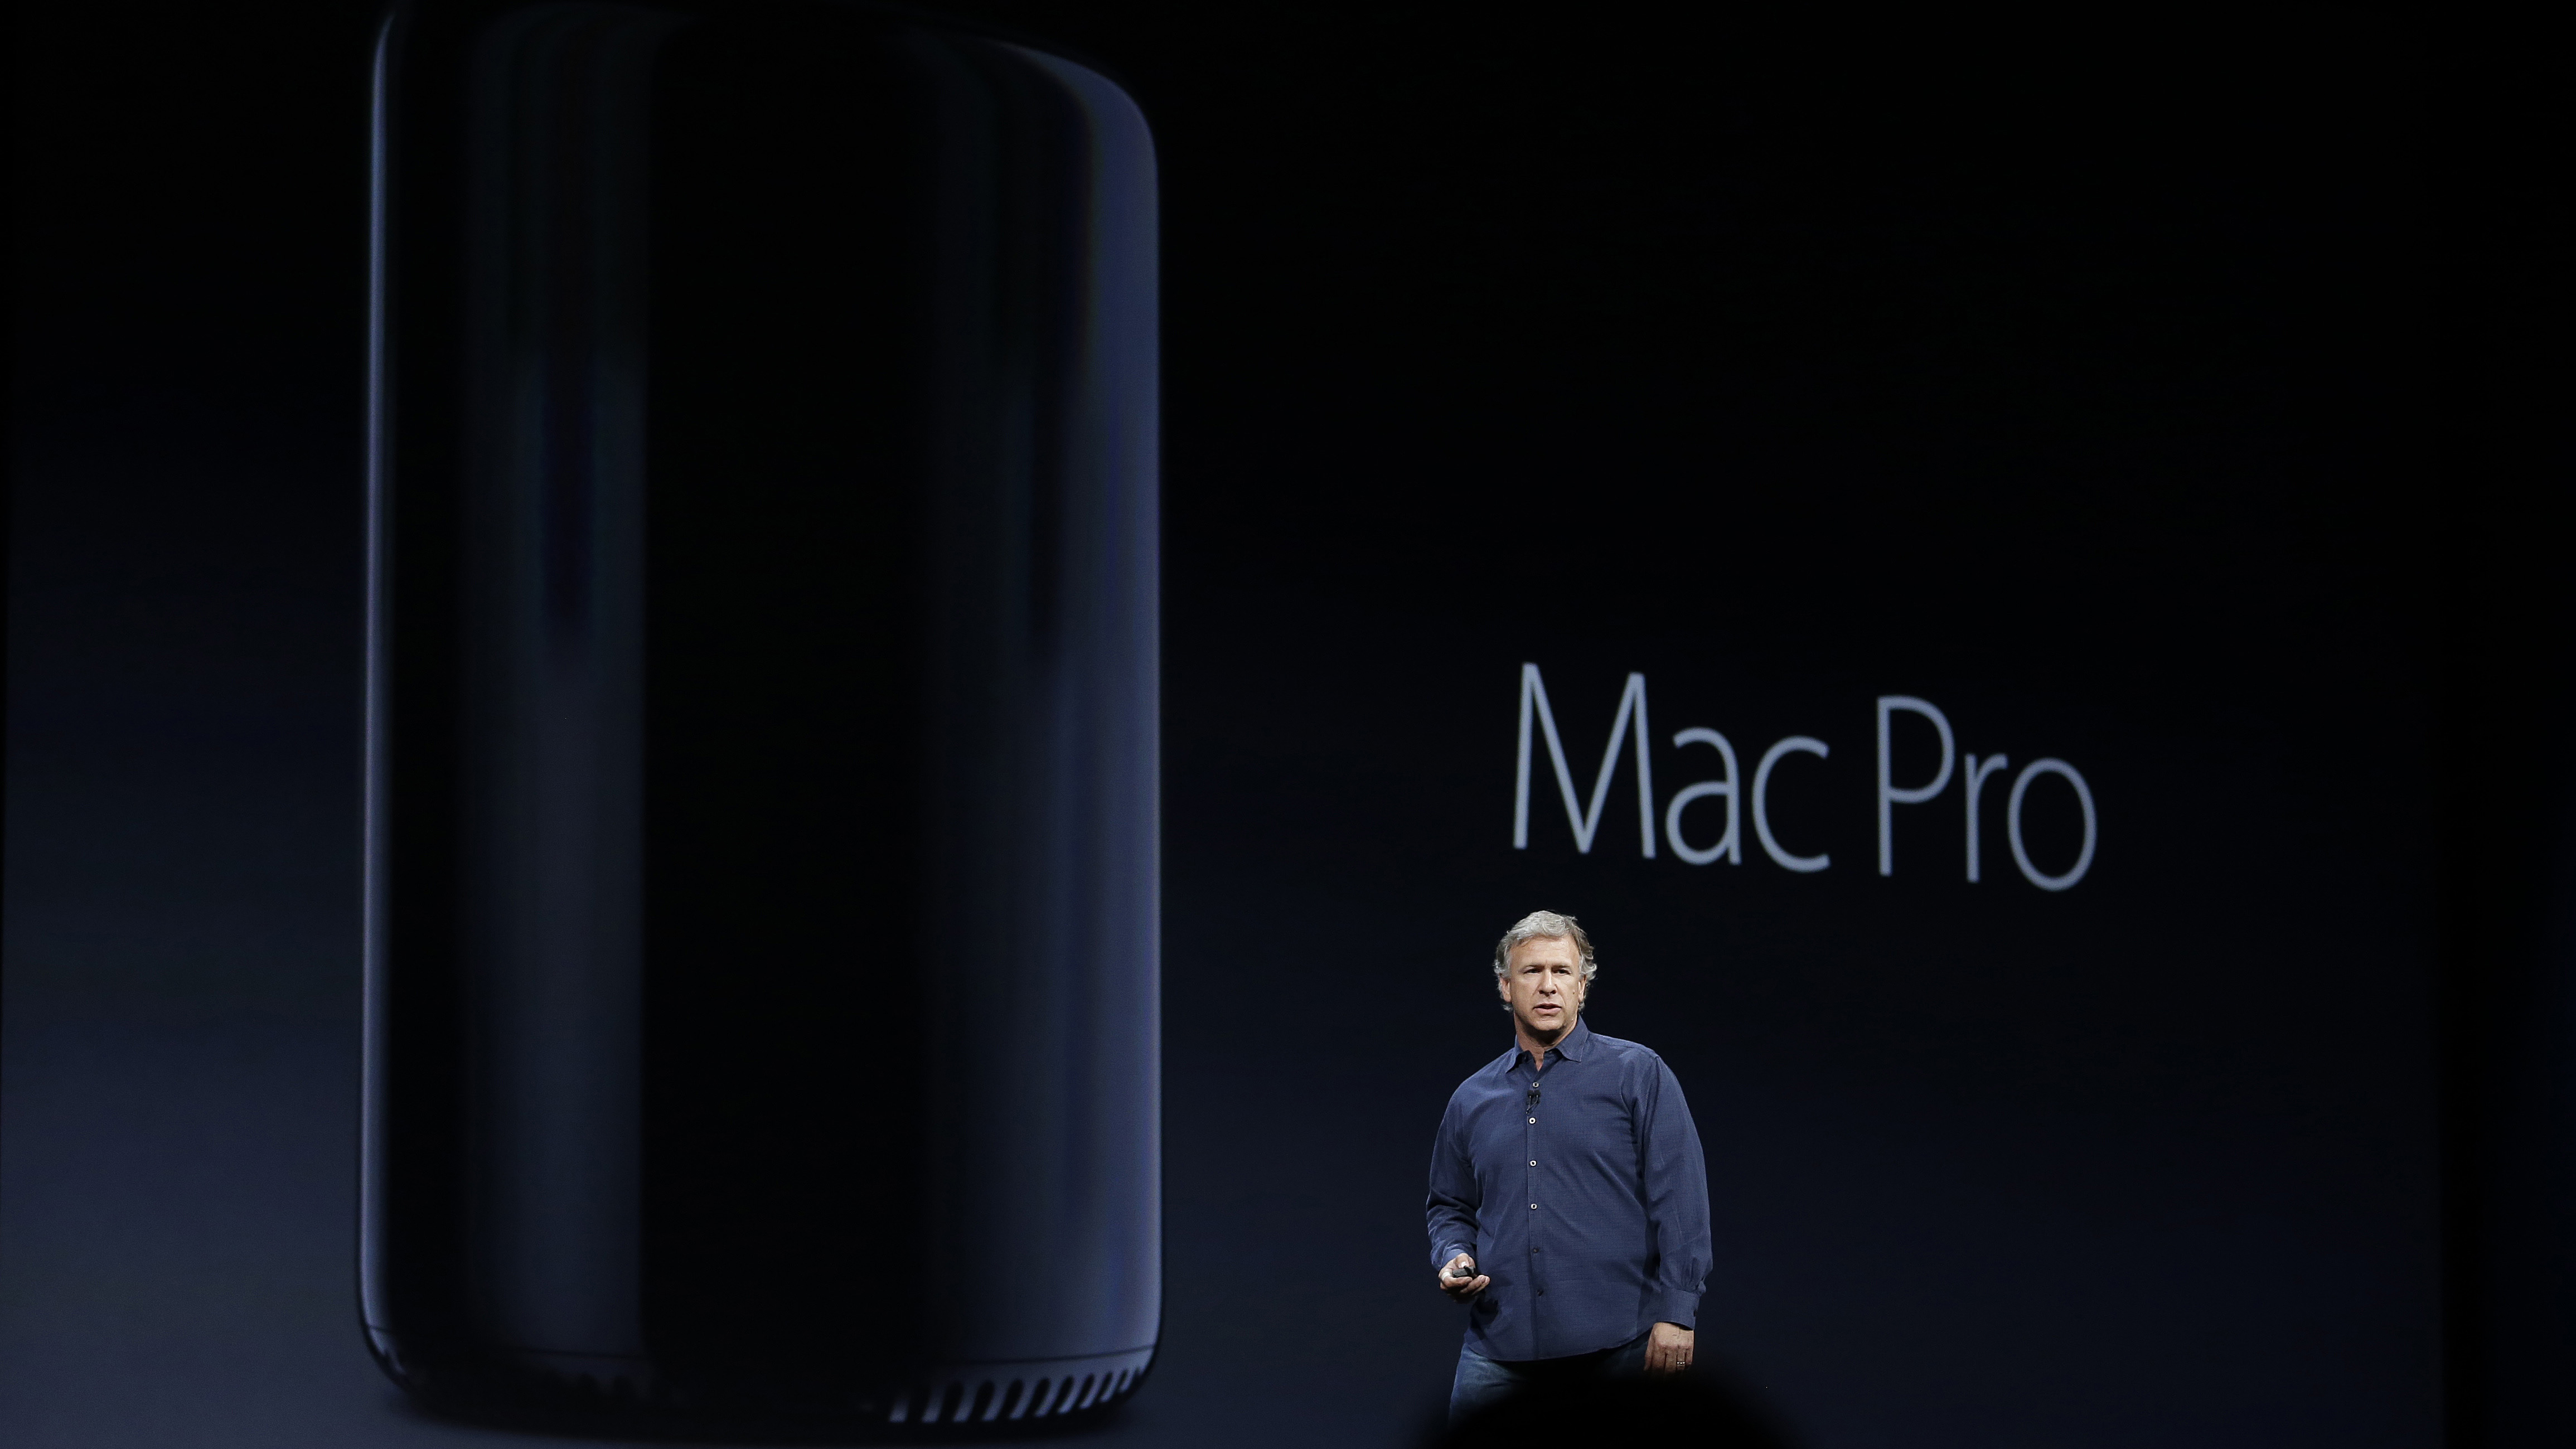 Phil Schiller the senior vice president of worldwide marketing at Apple talks about the new Mac Pro during the keynote address of the Apple Worldwide Developers Conference Monday, June 10, 2013 in San Francisco. (AP Photo/Eric Risberg)